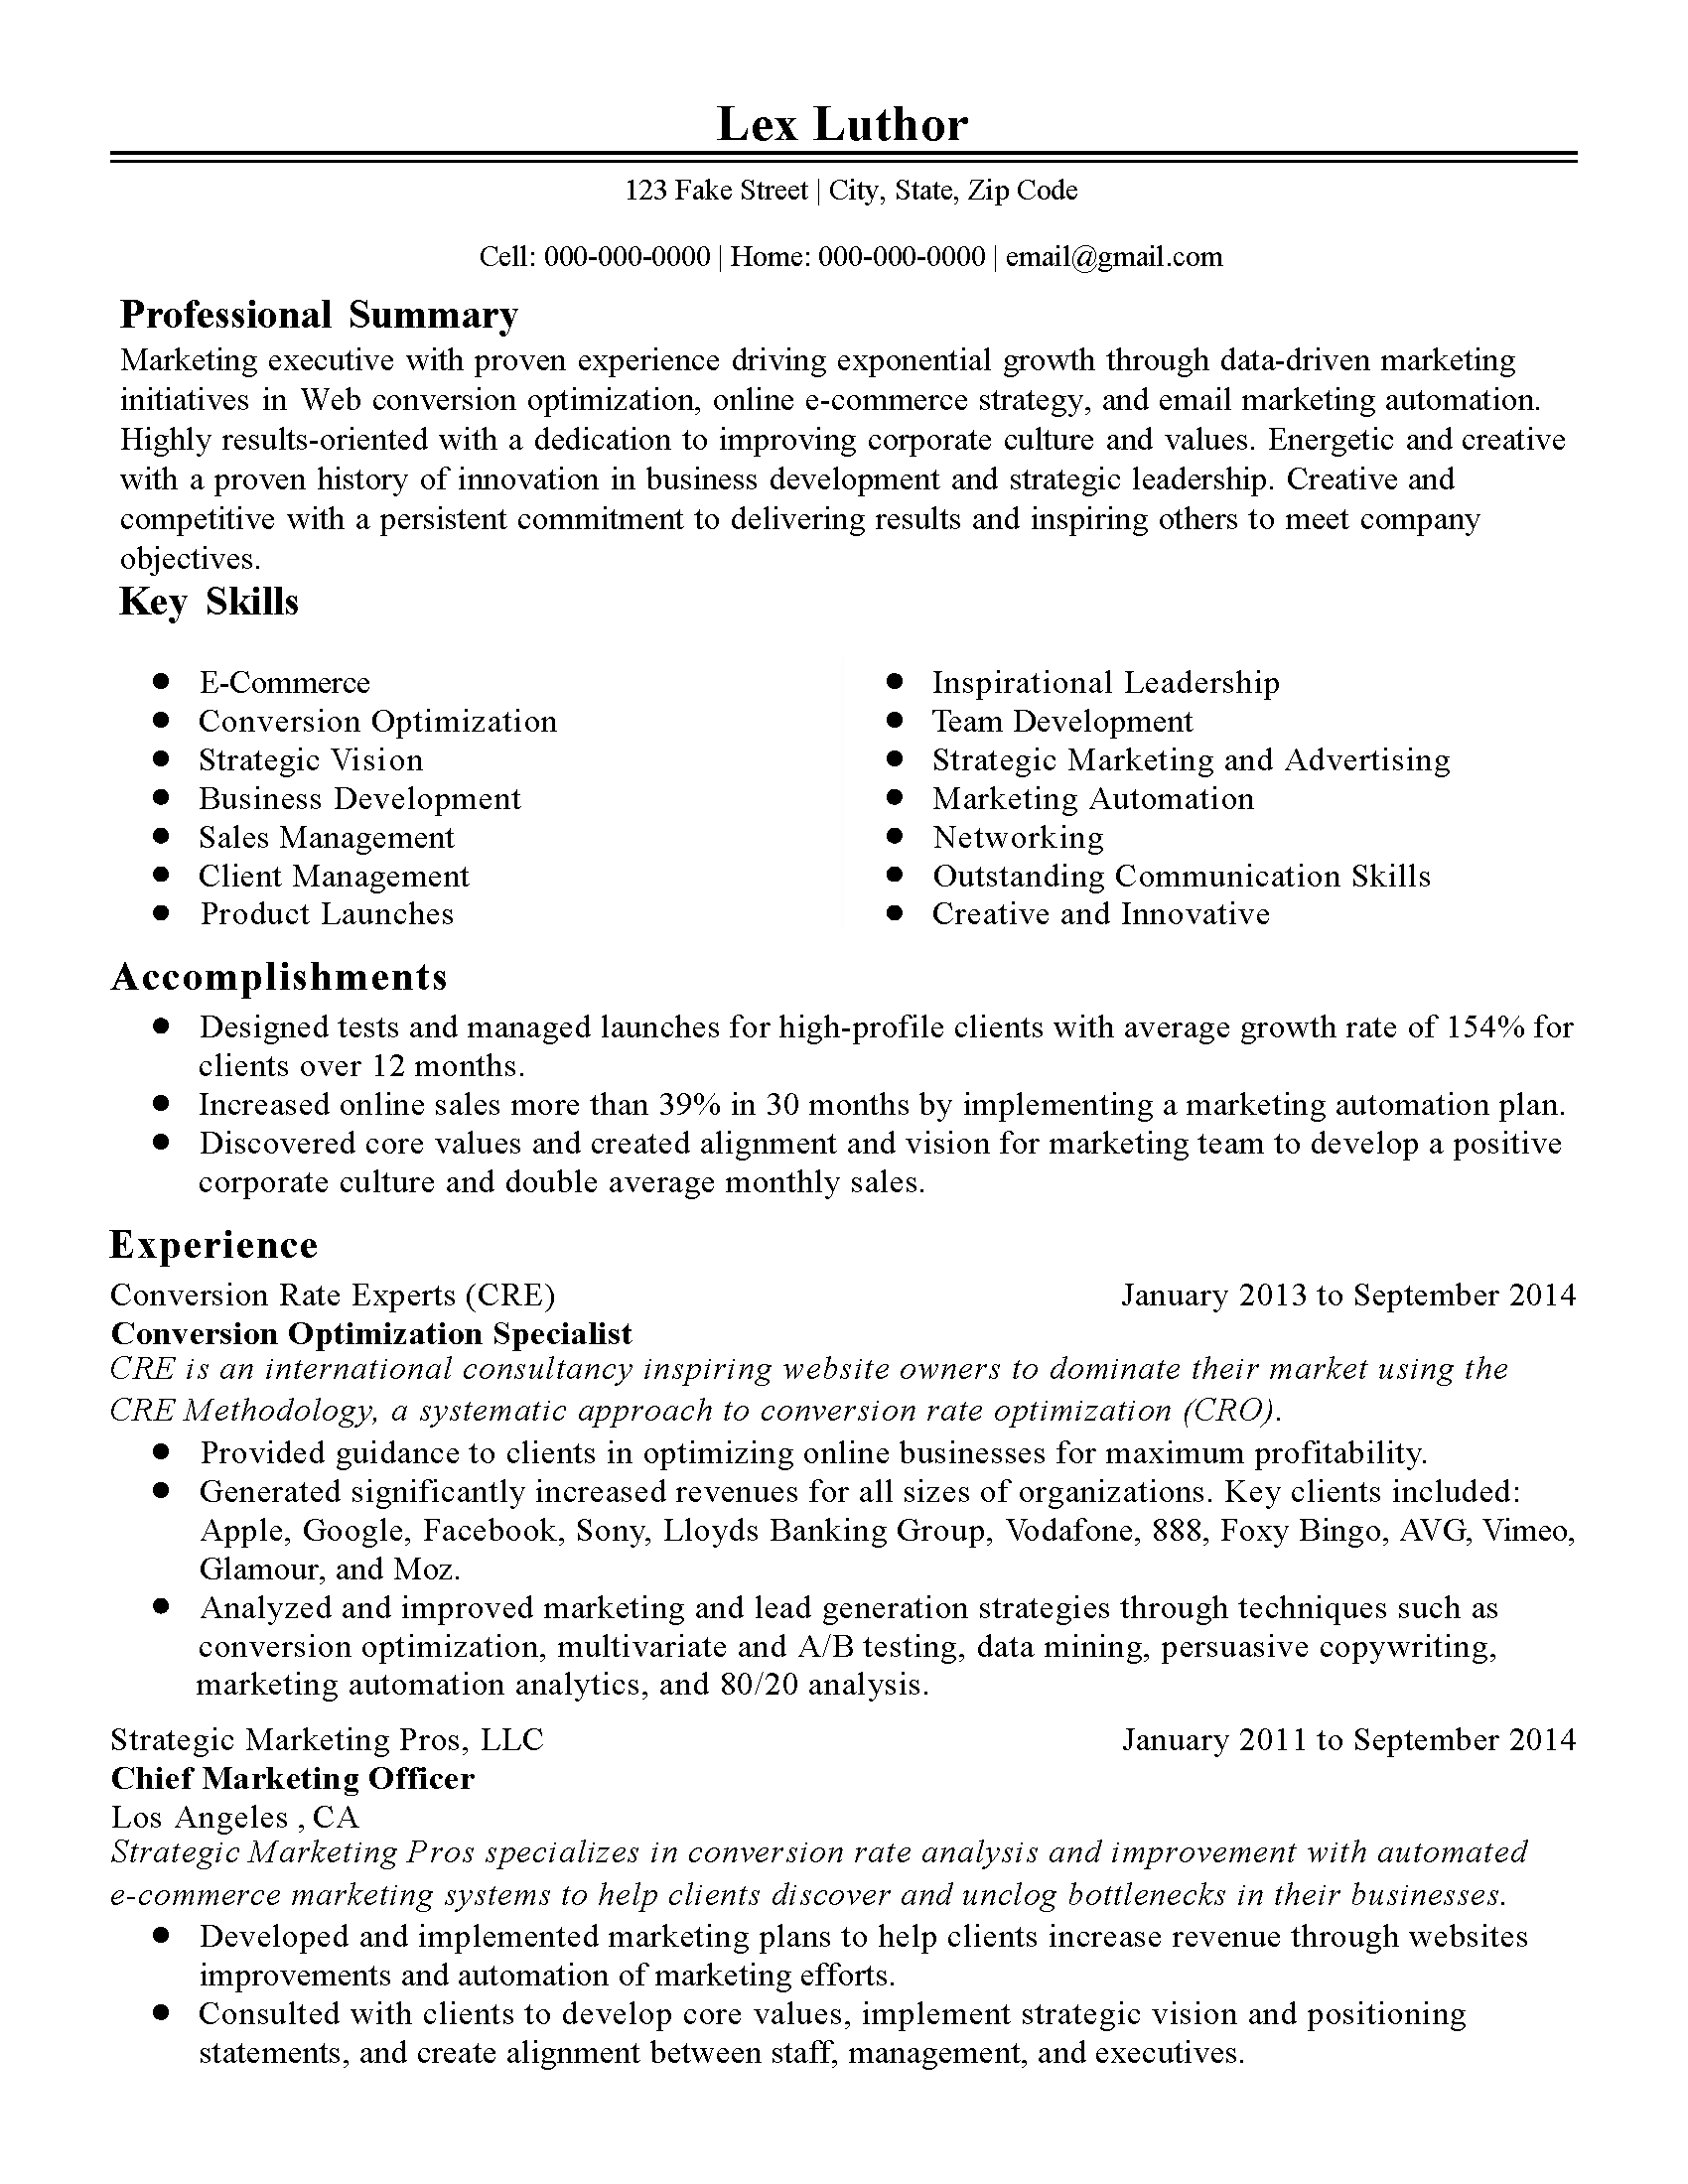 Marketing Resume Summary Statement Examples Professional Conversion Optimization Specialist Templates